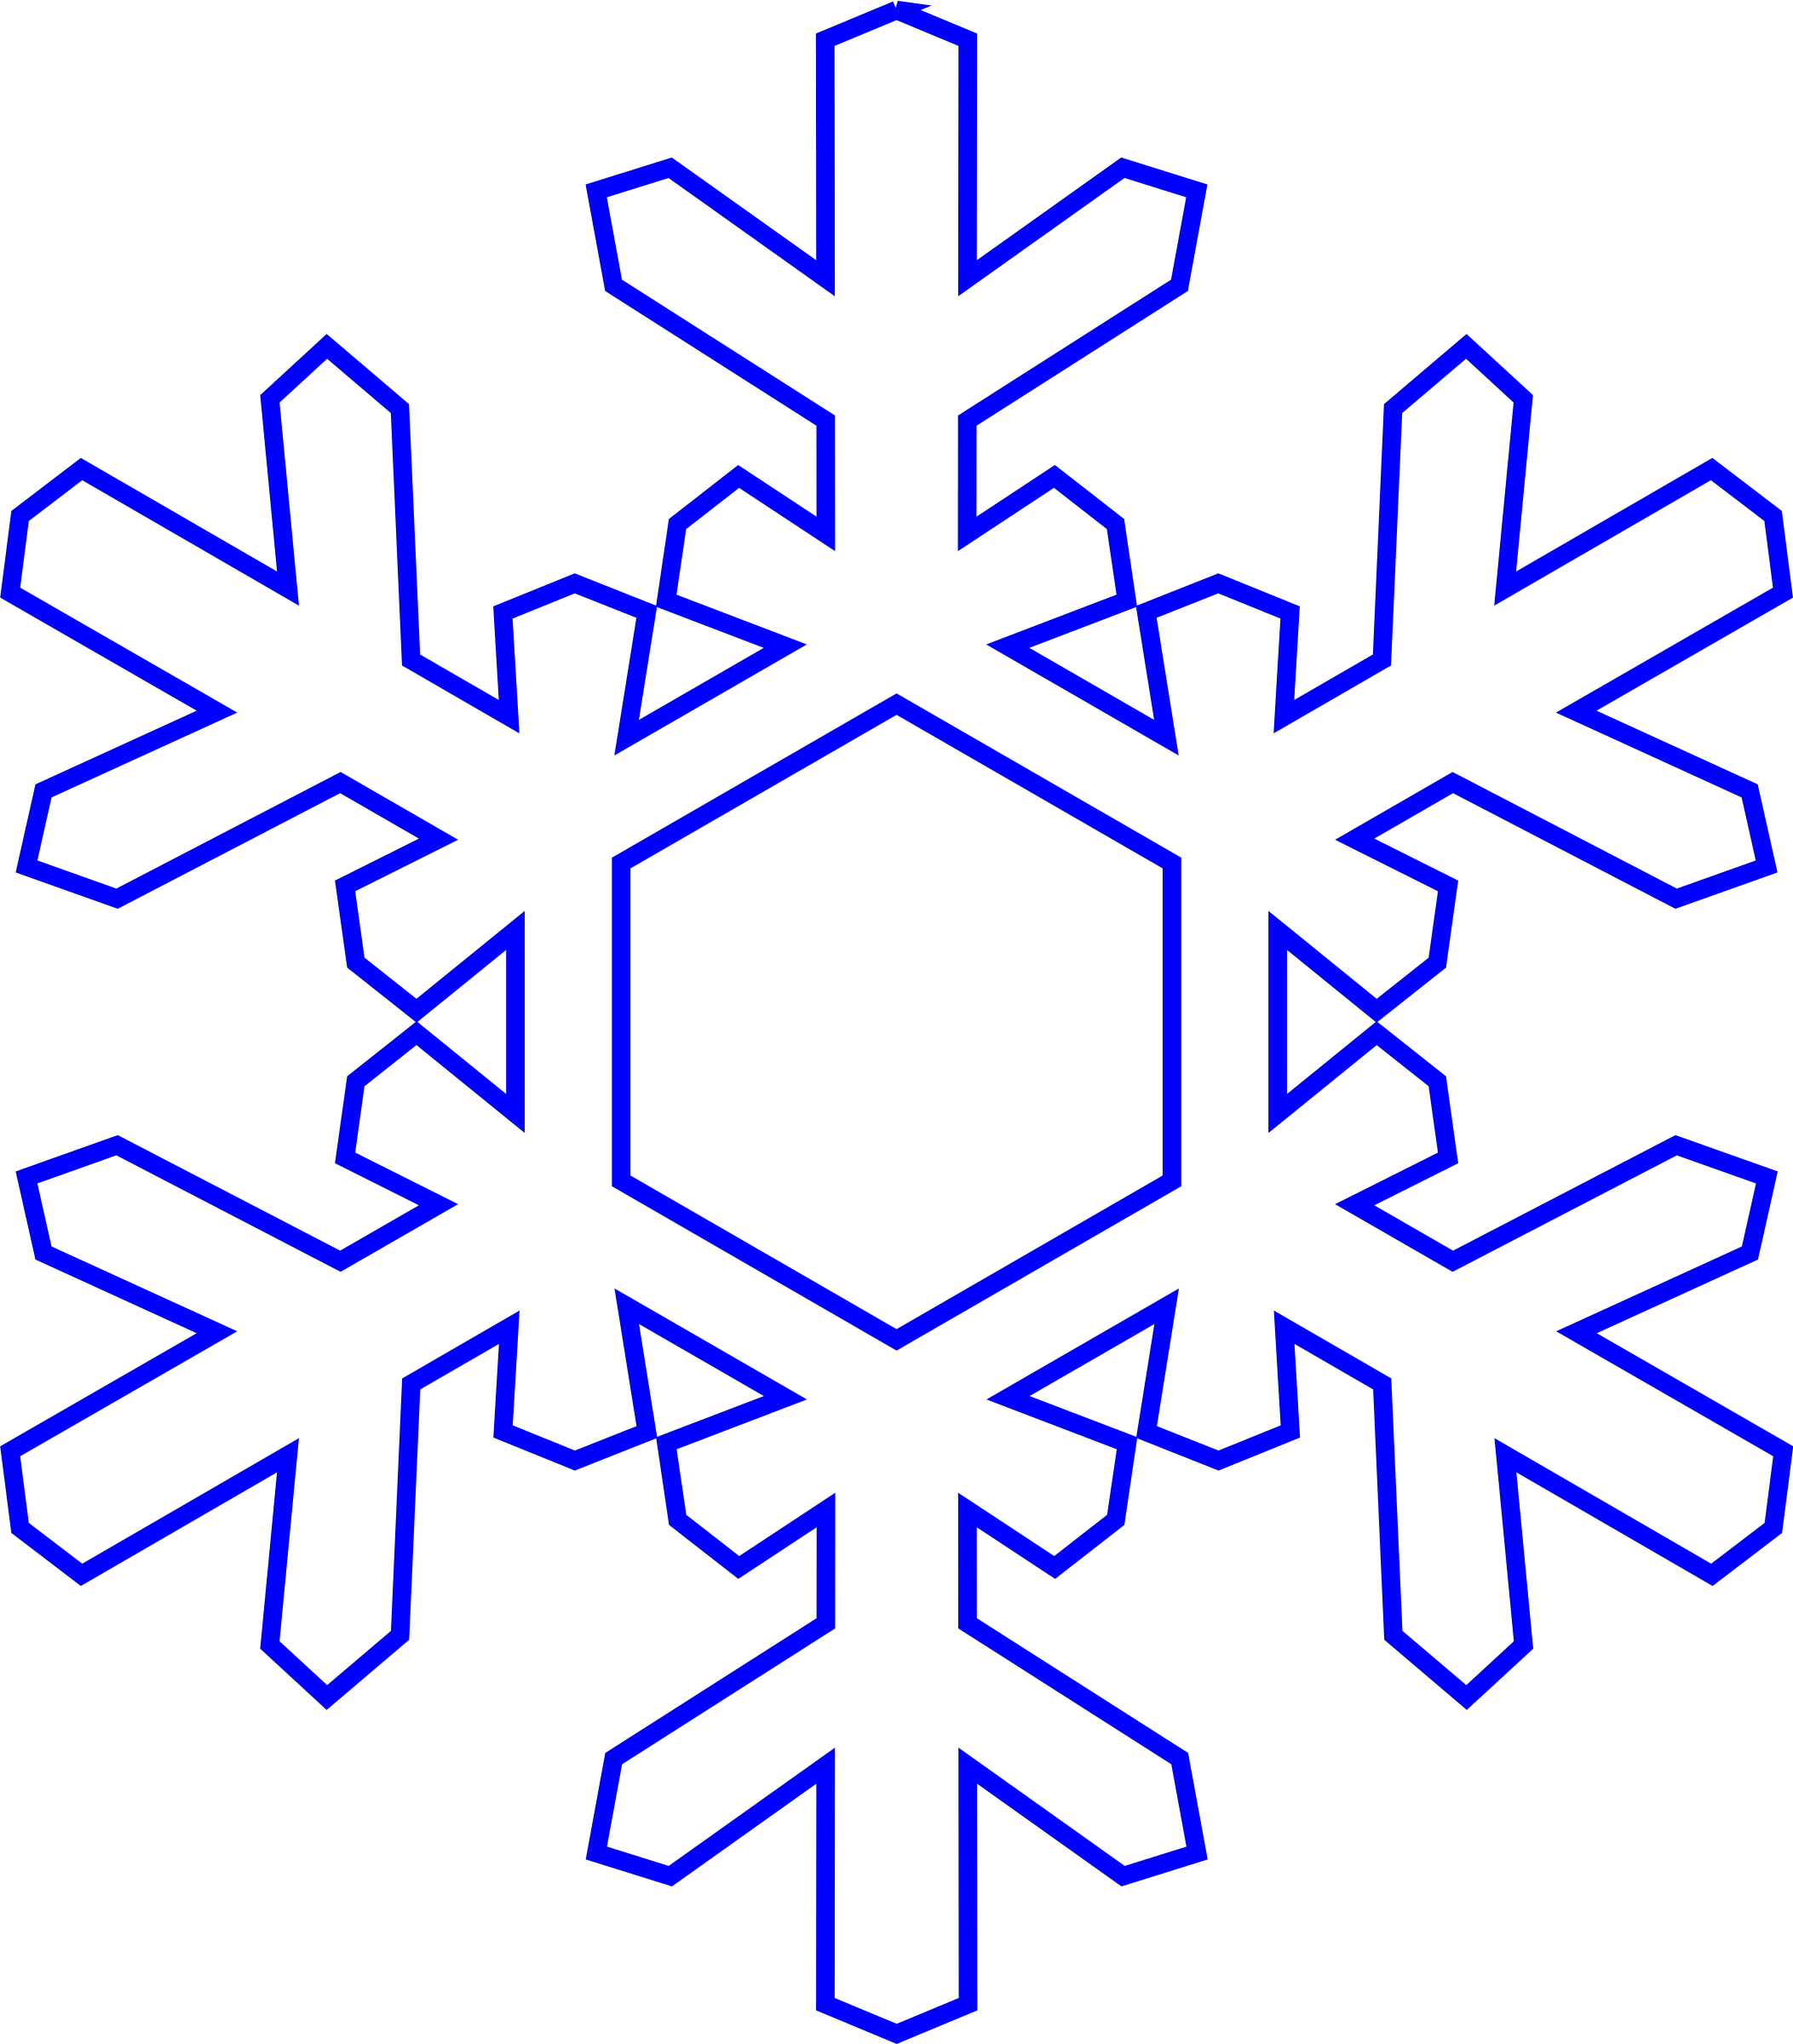 snowflake vector graphic image free stock photo public domain rh goodfreephotos com white snowflake vector art snowflake vector art free